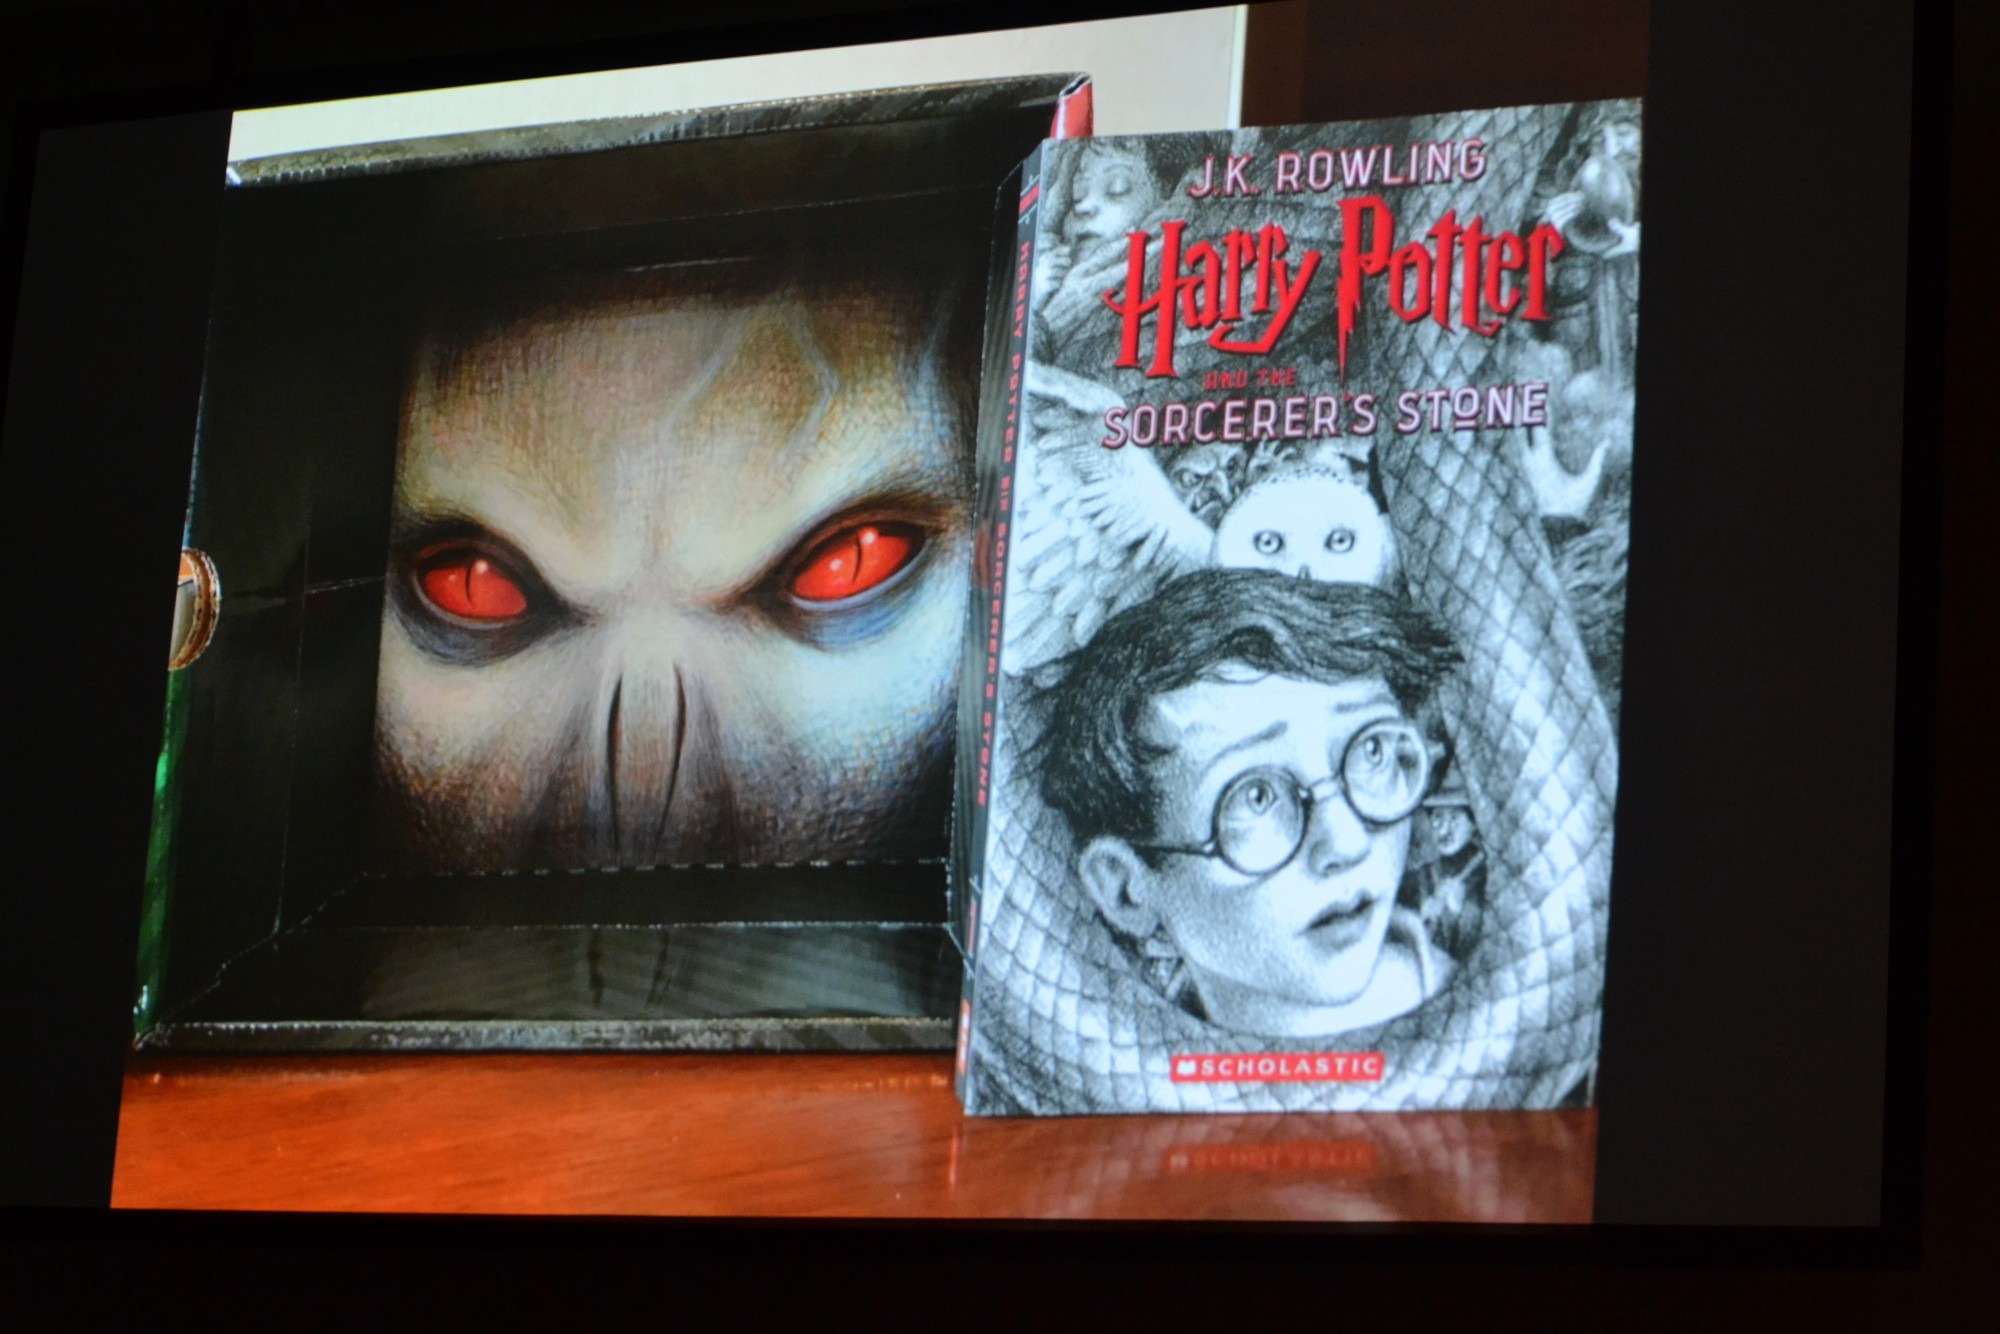 Harry Potter 20 Years Of Magic Please Take All My Sdcc Money